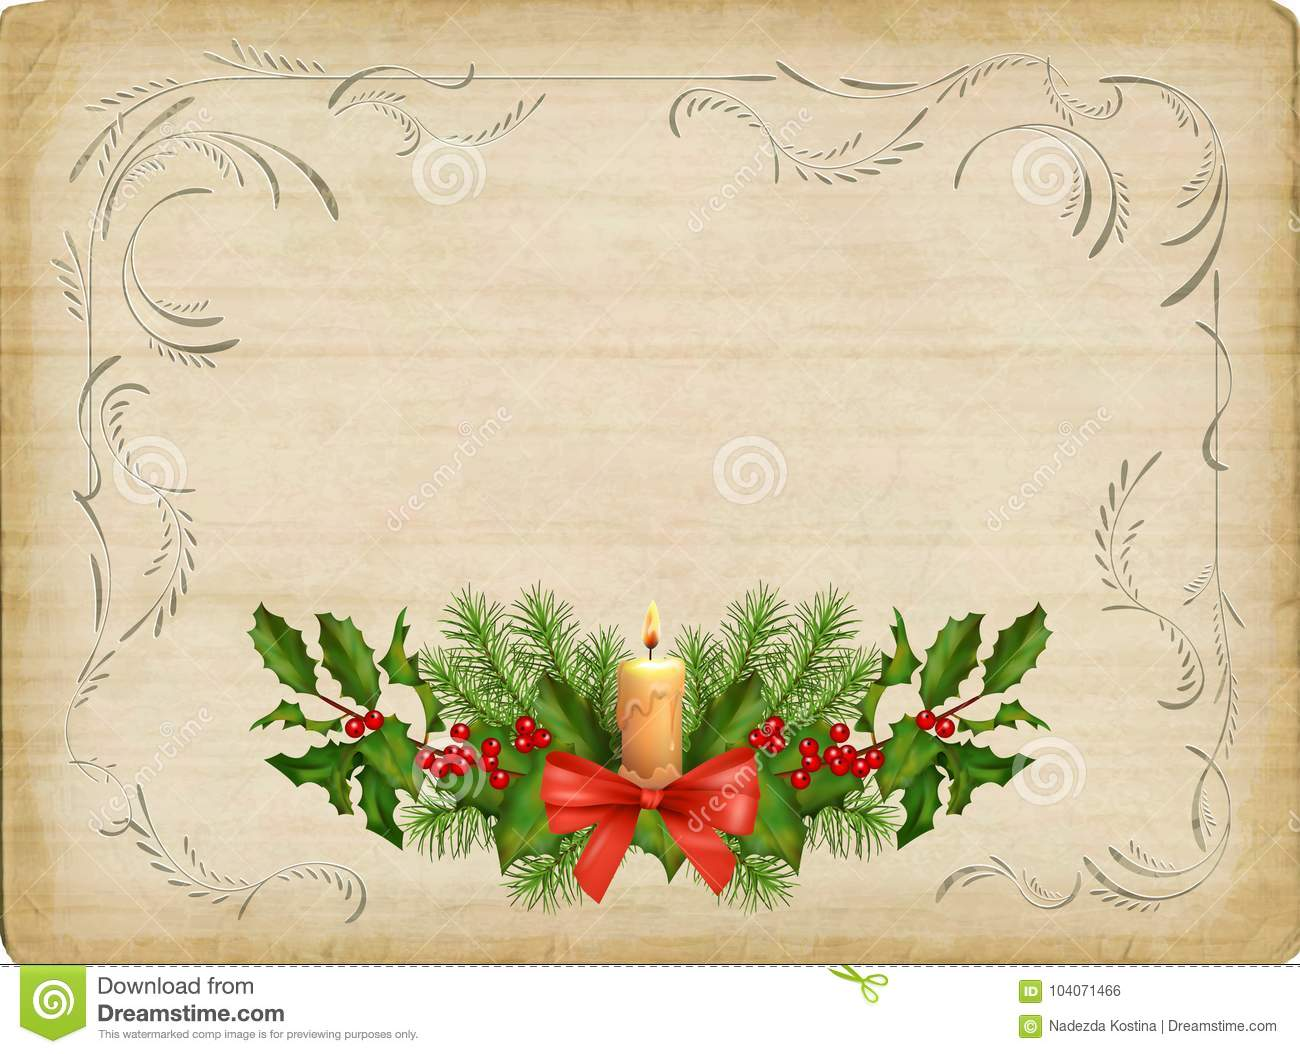 Vintage Christmas Card stock vector. Illustration of card - 104071466